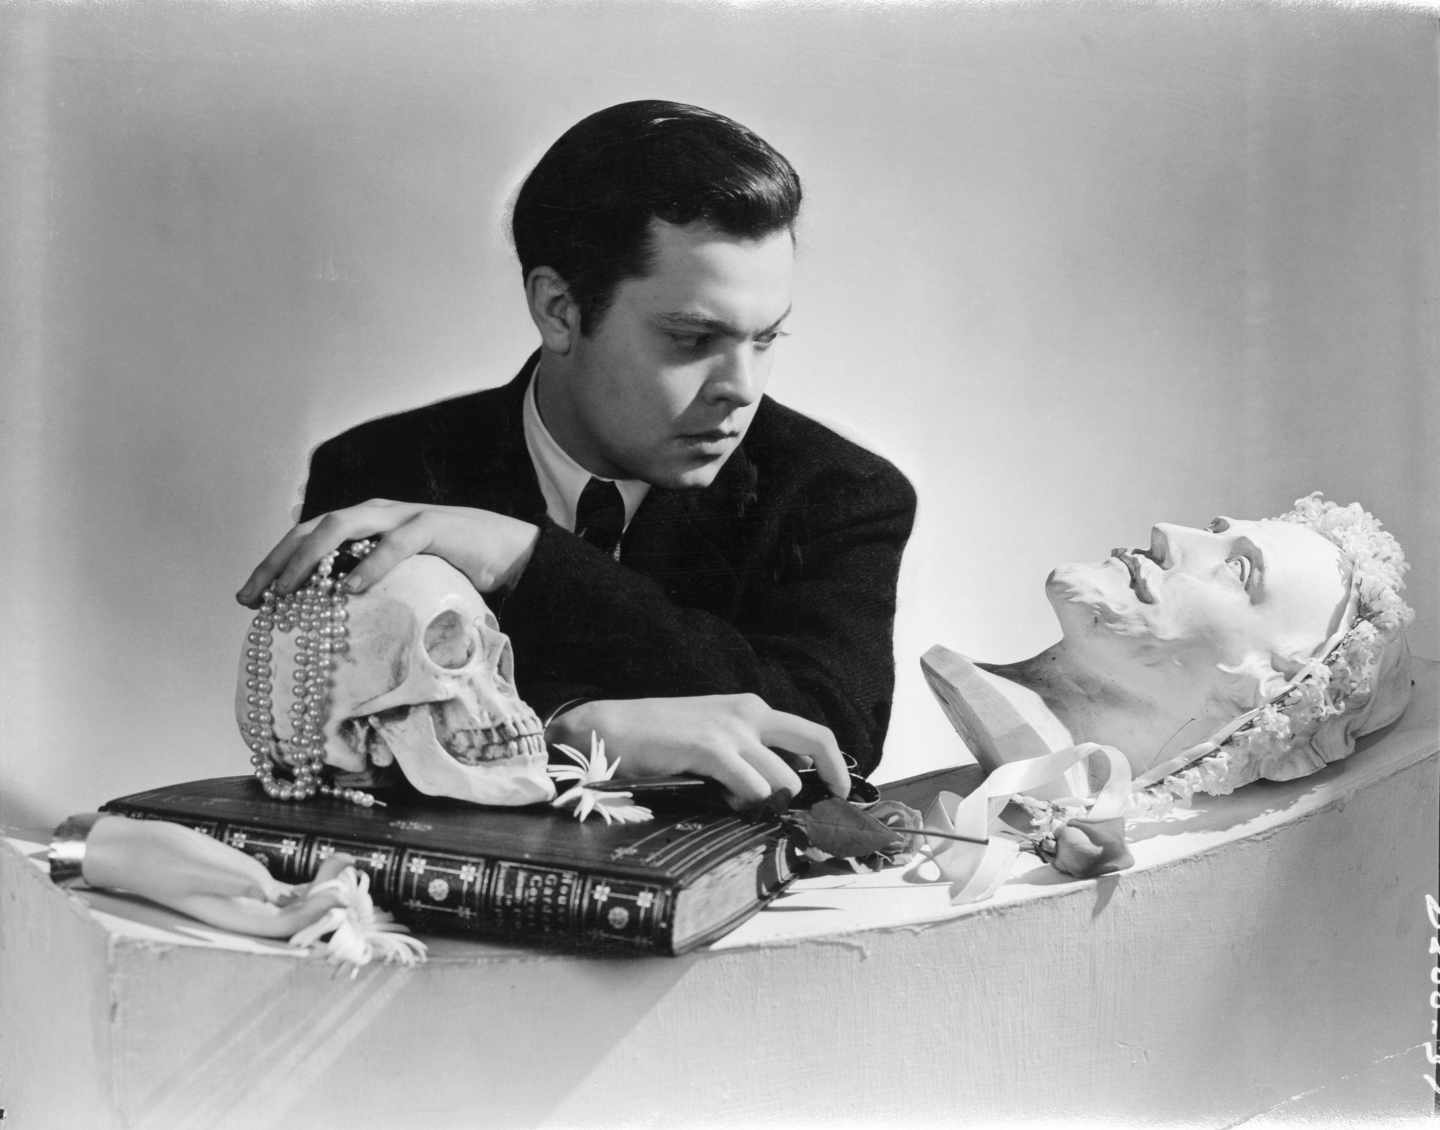 Cecil Beaton. Orson Welles, 1937 ©The Cecil Beaton Studio Archive at Sotheby's